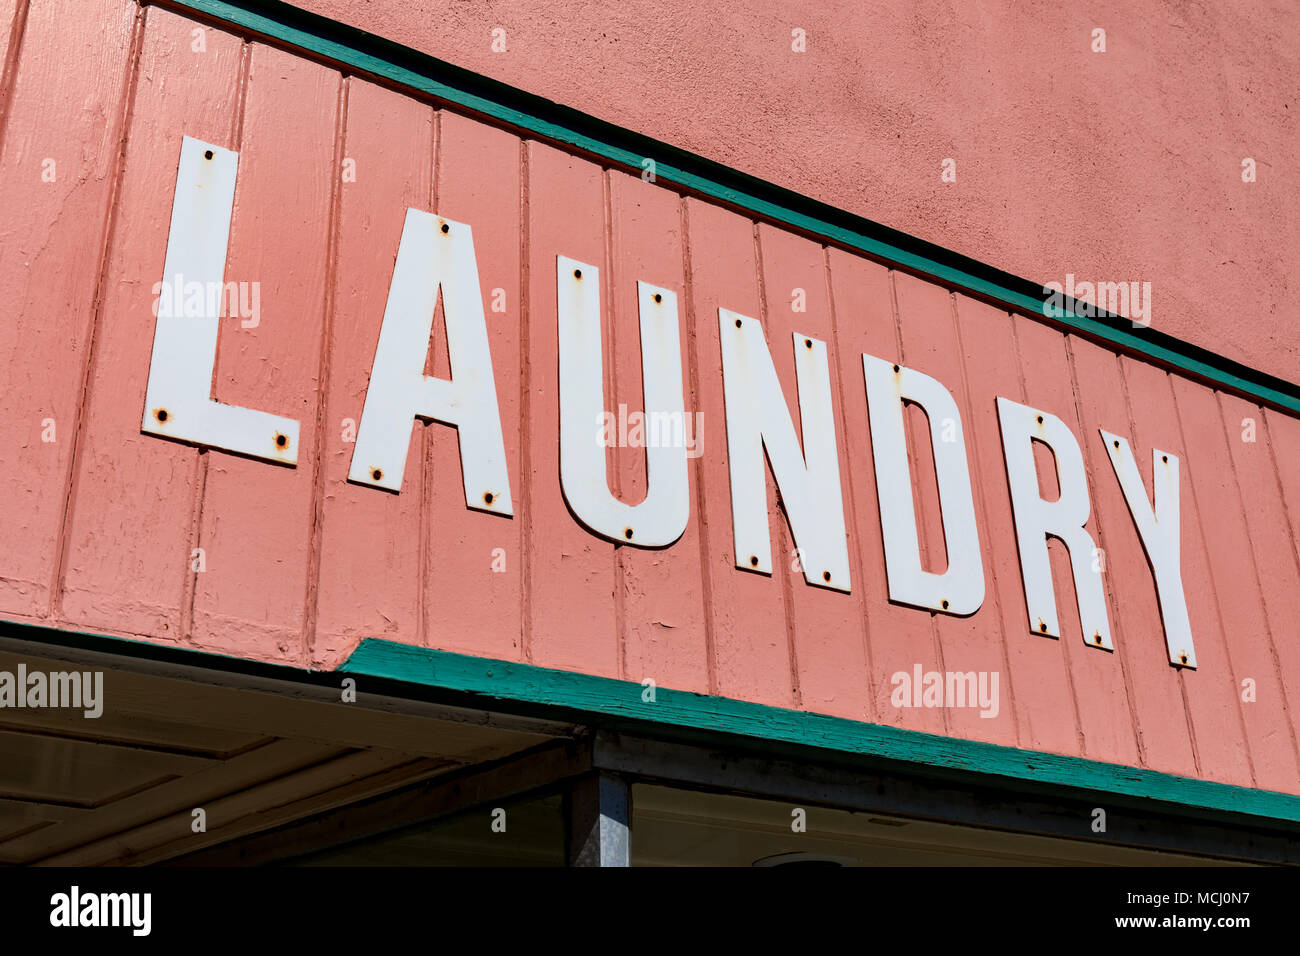 Laundry Shop Stock Photos Amp Laundry Shop Stock Images Alamy